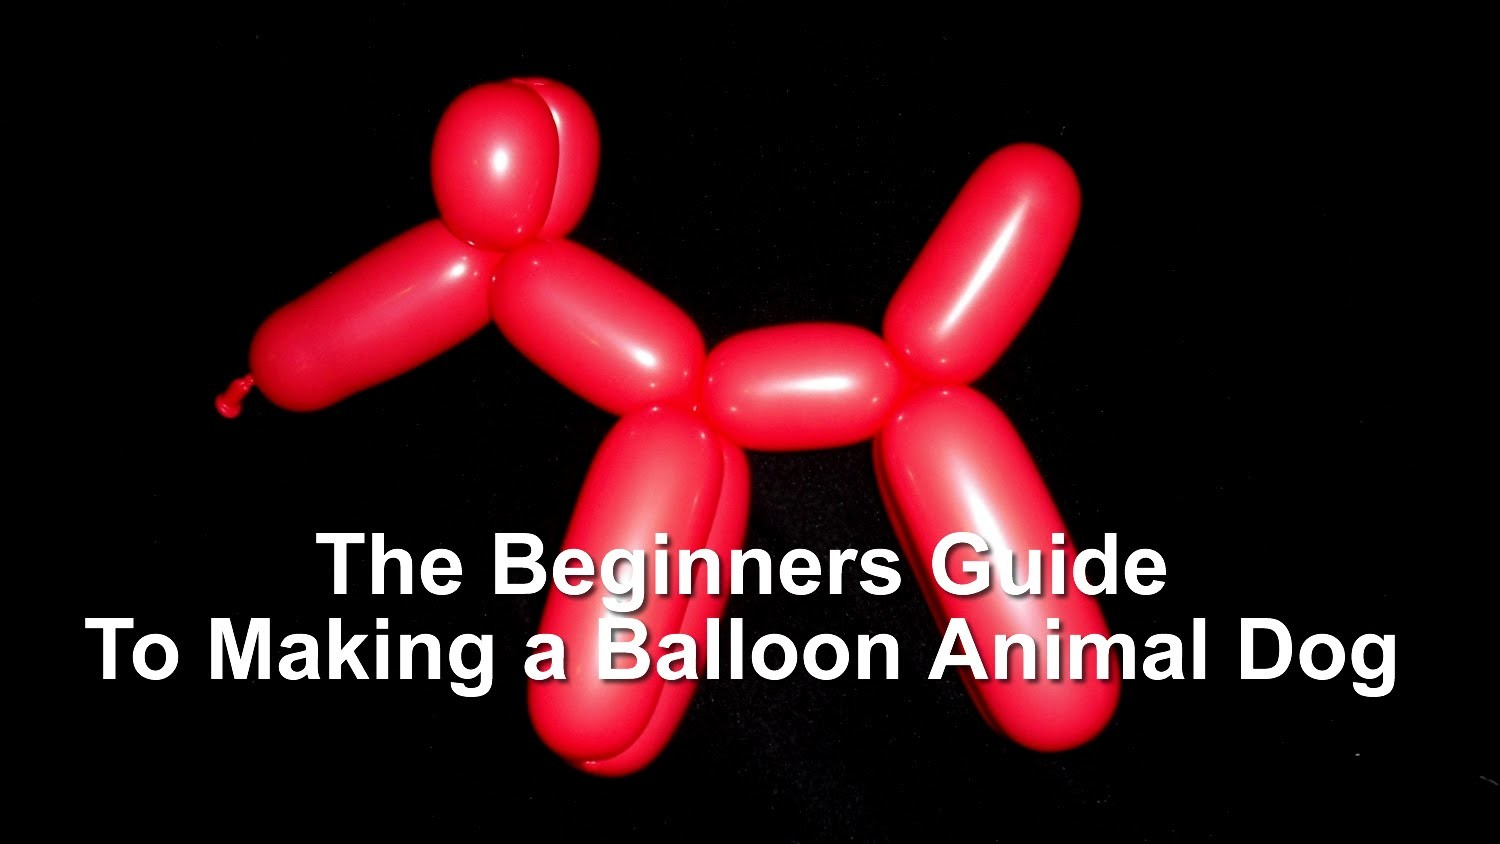 The Beginner's Guide to Making a Dog Balloon Animal